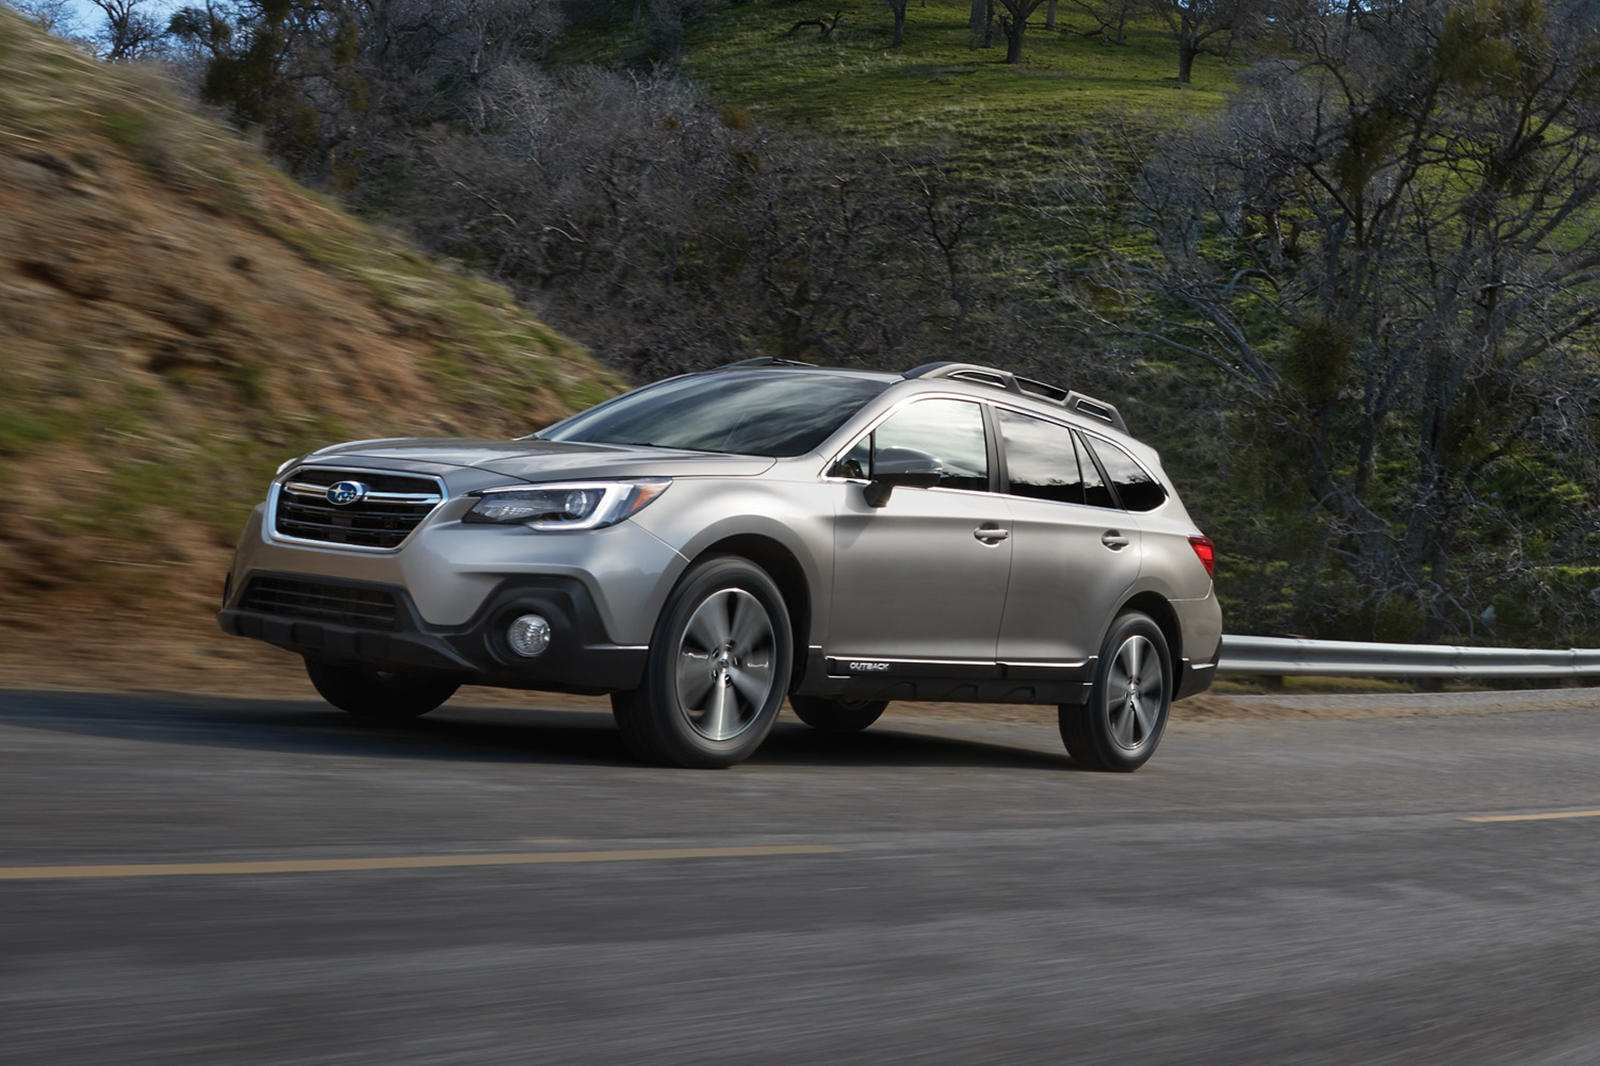 62 The Subaru Outback 2020 Spy Release Date by Subaru Outback 2020 Spy